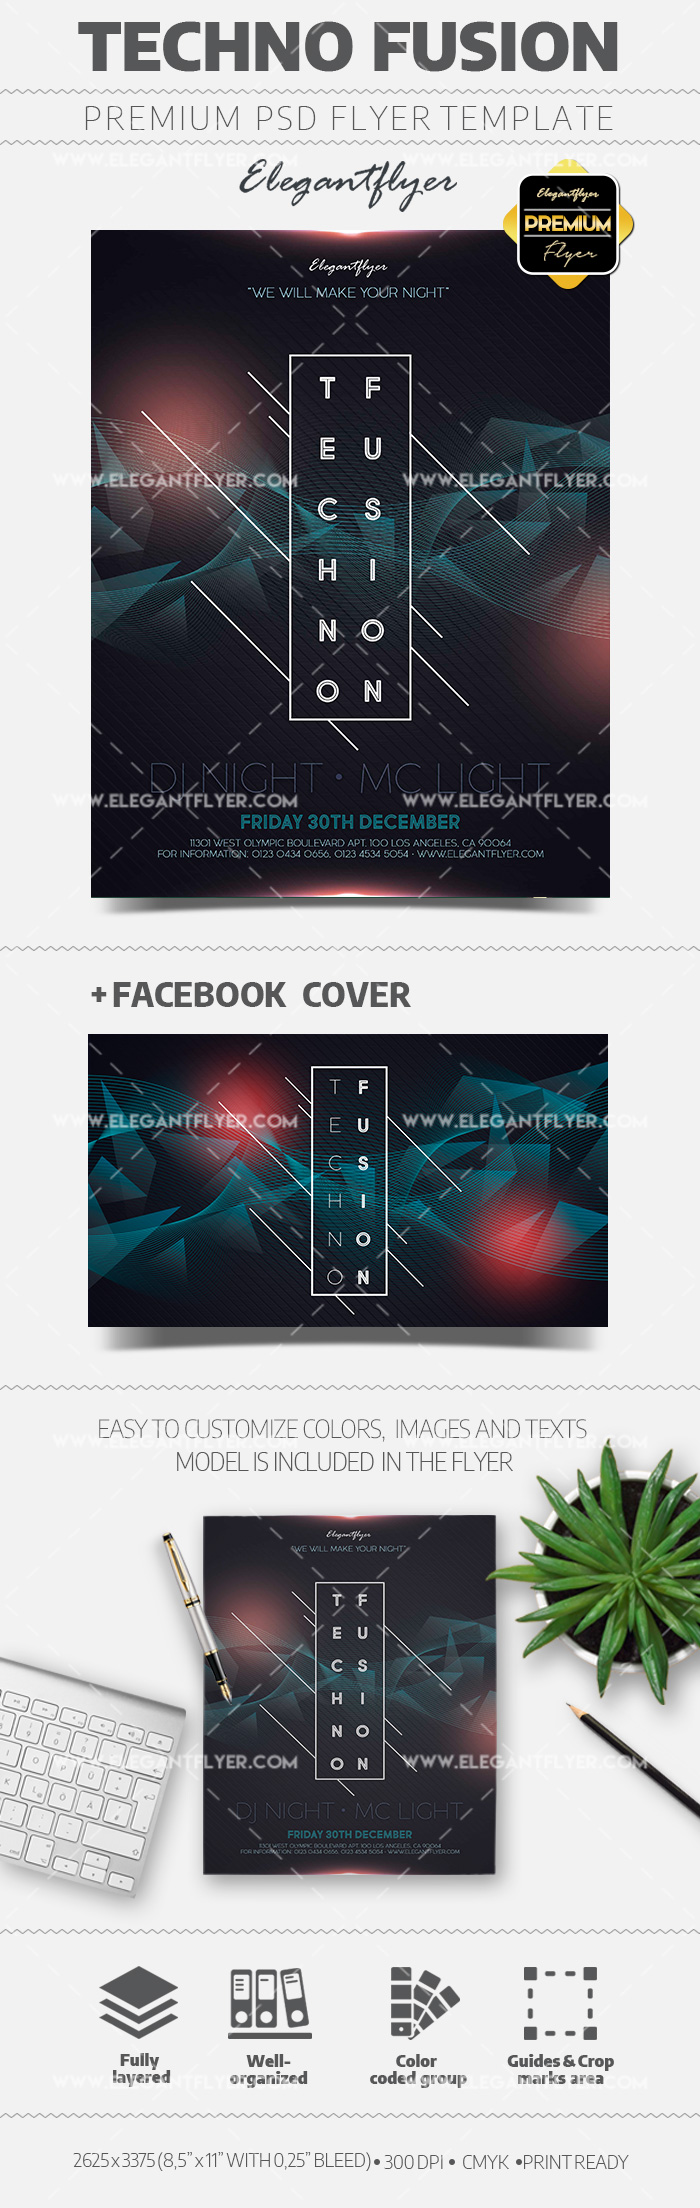 Techno Fusion PSD Flyer Template